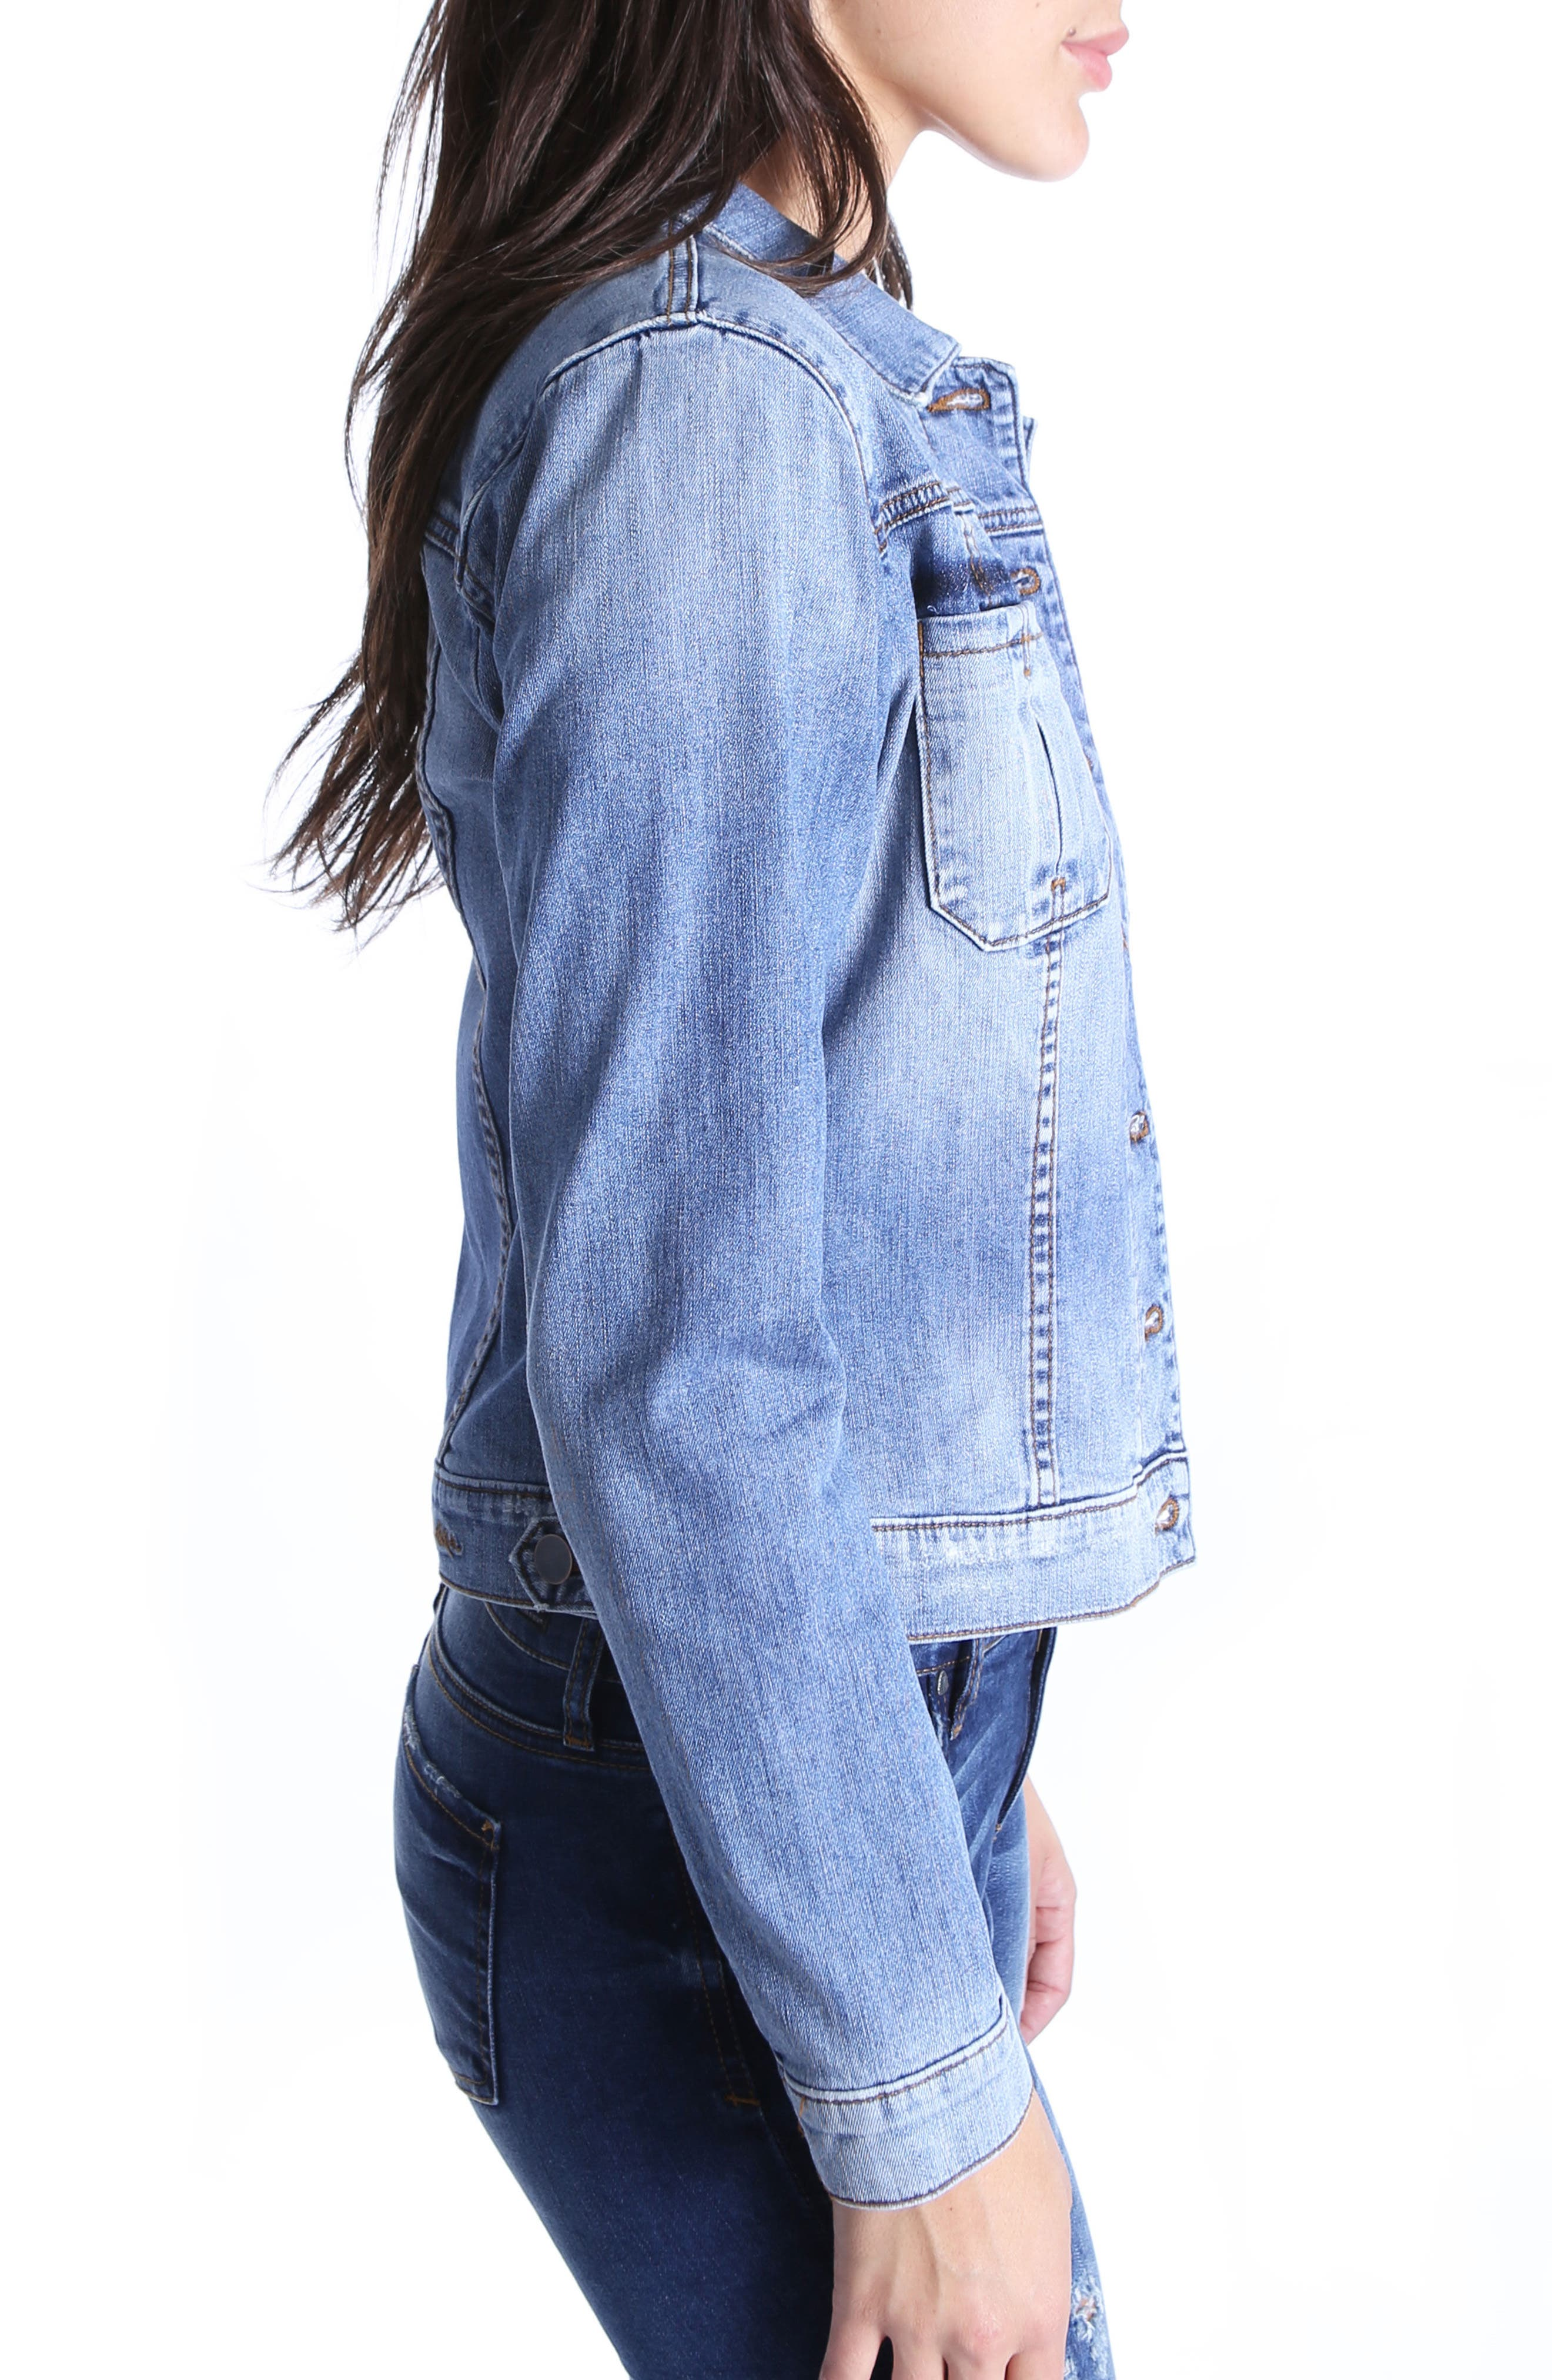 Juko Denim Jacket,                             Alternate thumbnail 3, color,                             400